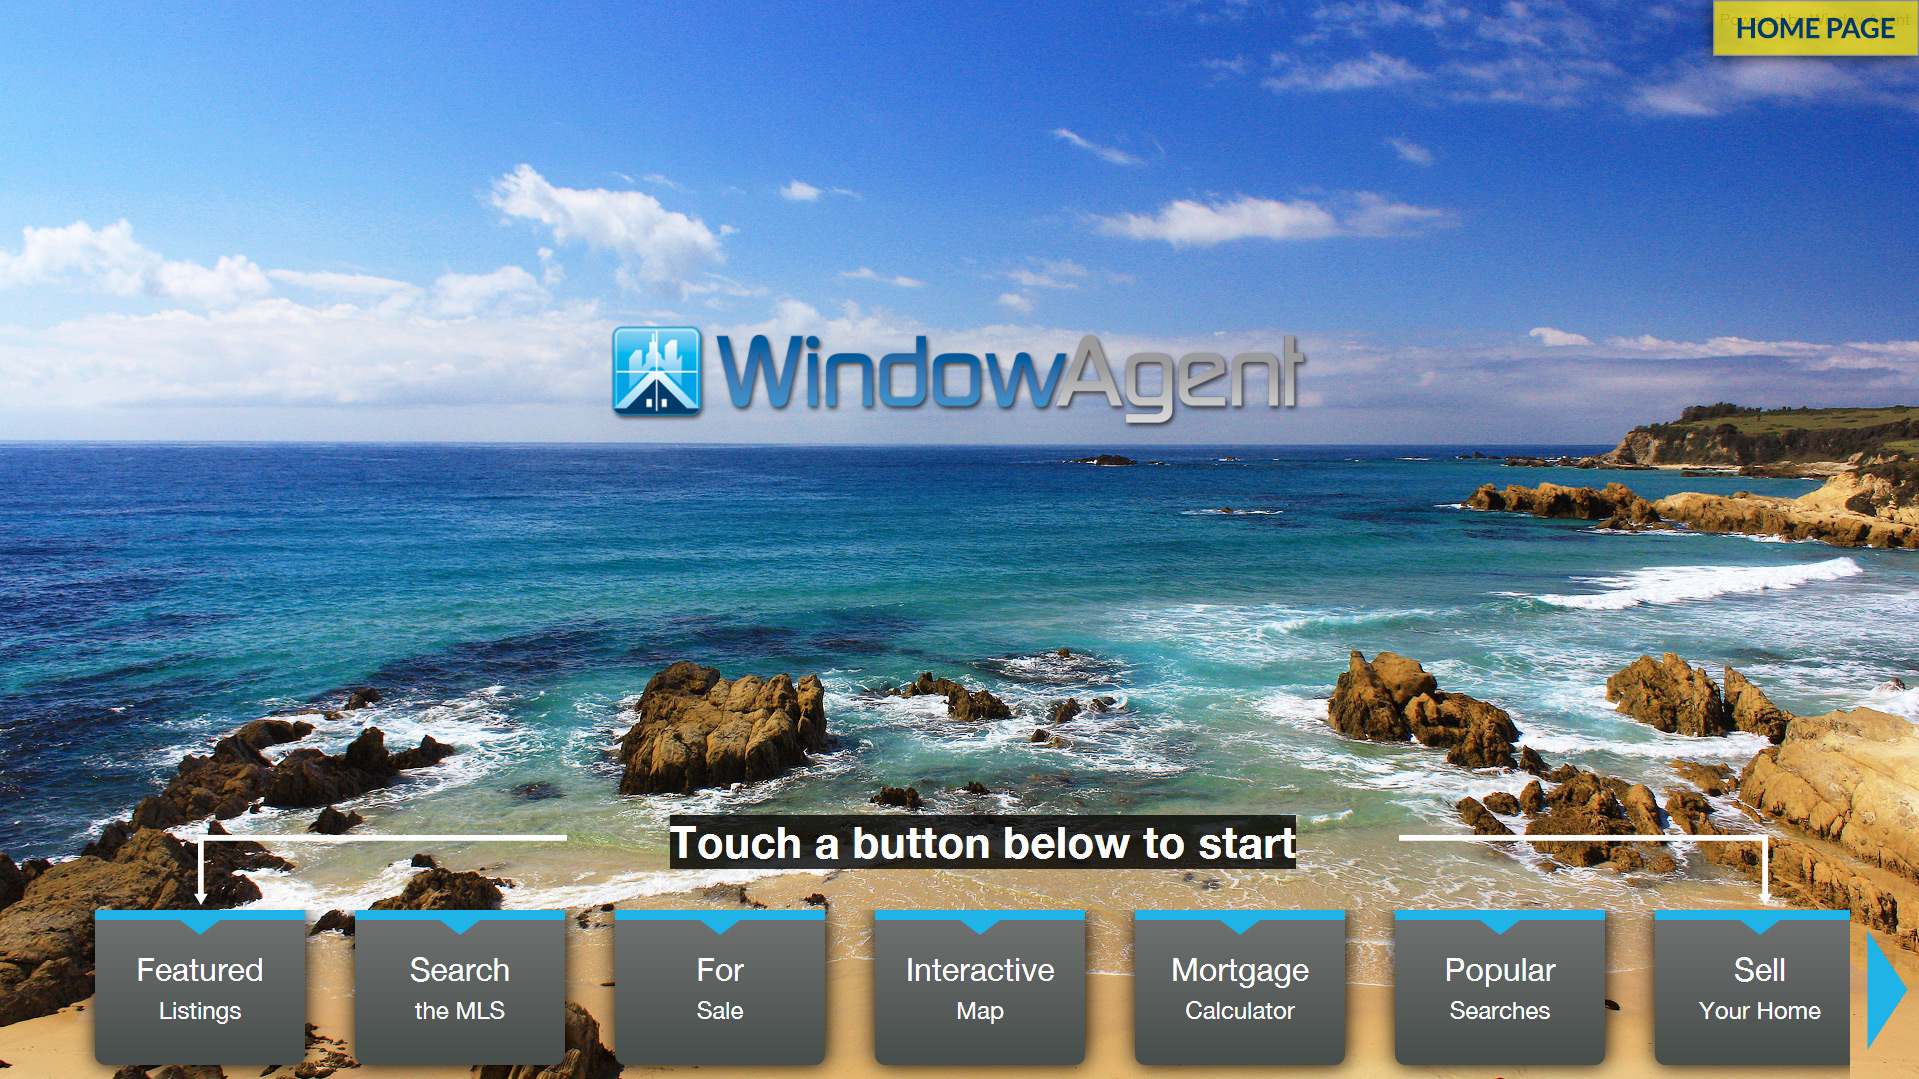 windowagent software home page